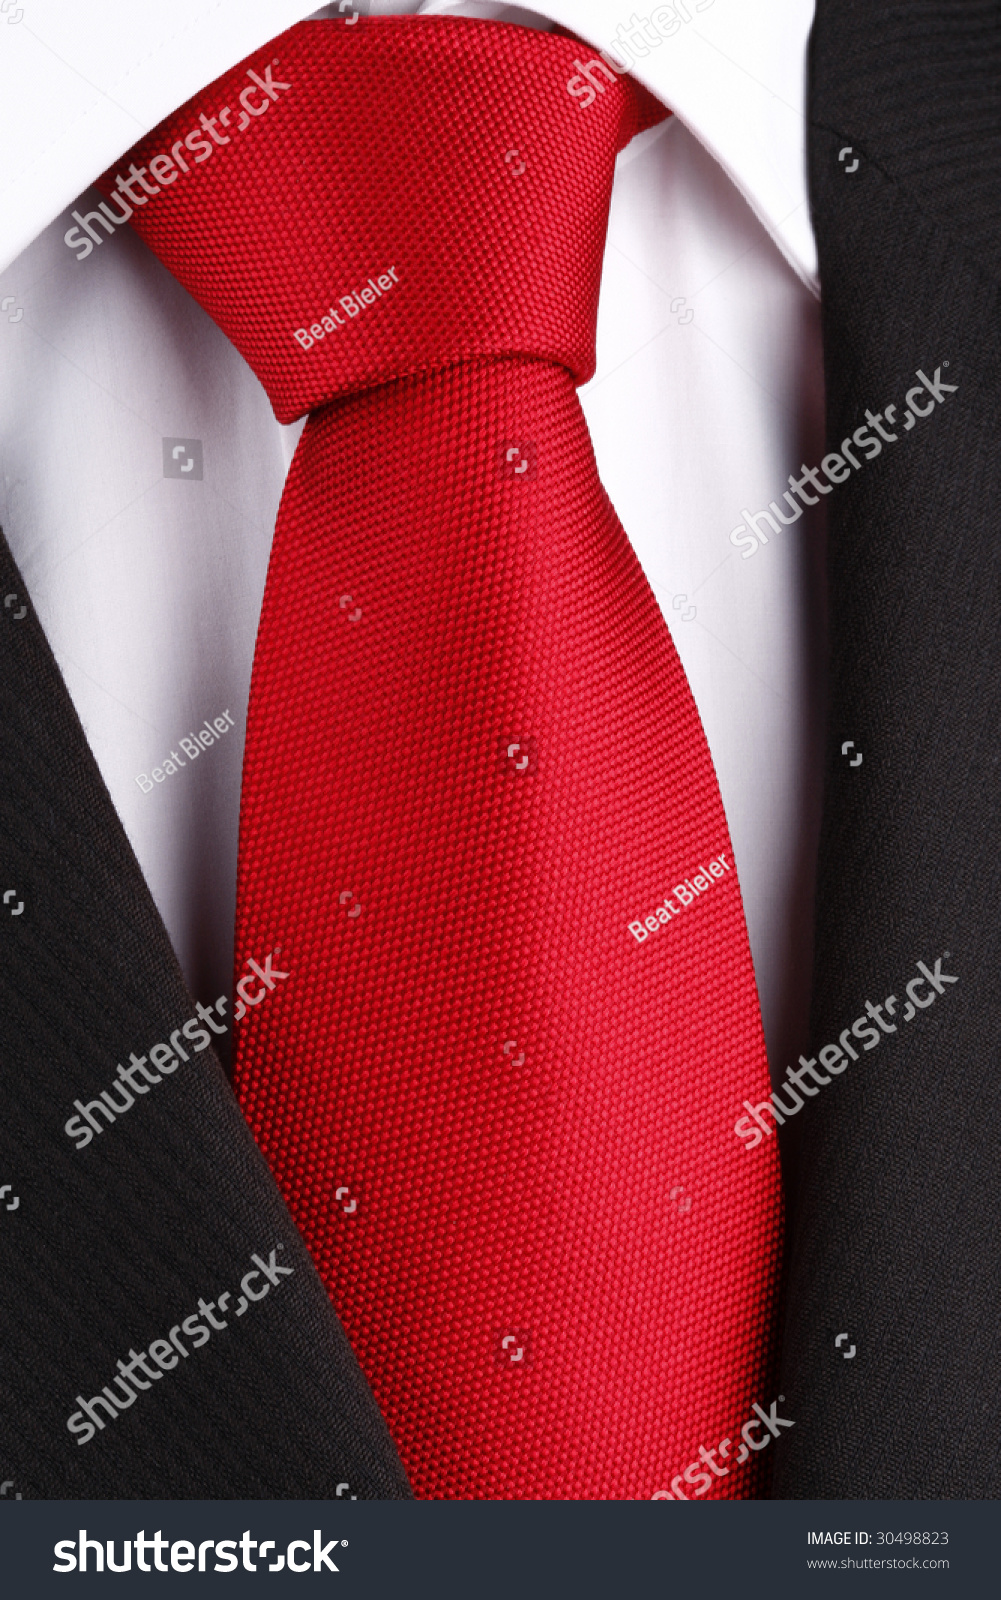 Bright Red Tie On White Shirt Stock Photo 30498823 - Shutterstock